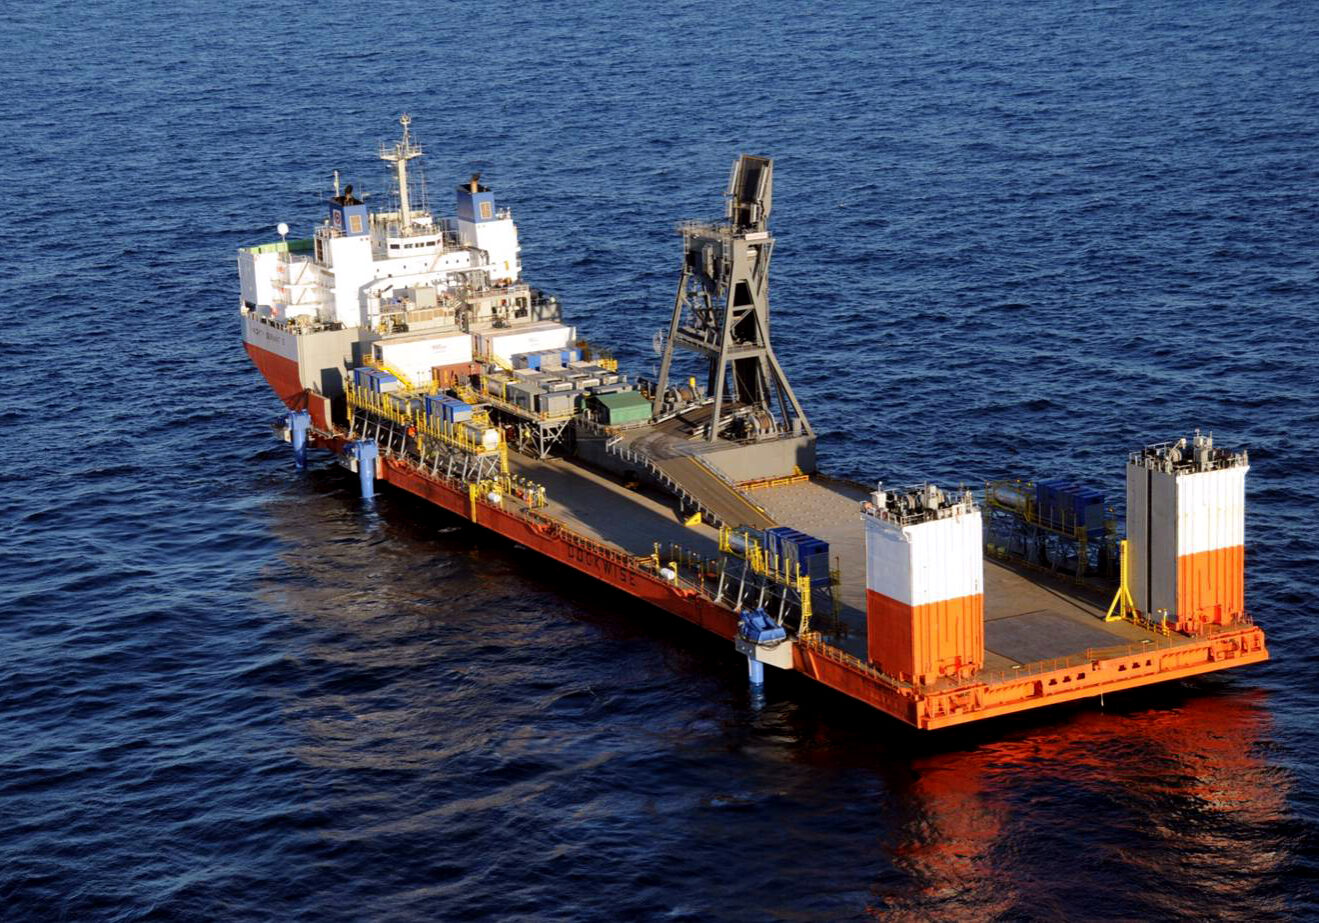 Ocean drilling ship out at sea